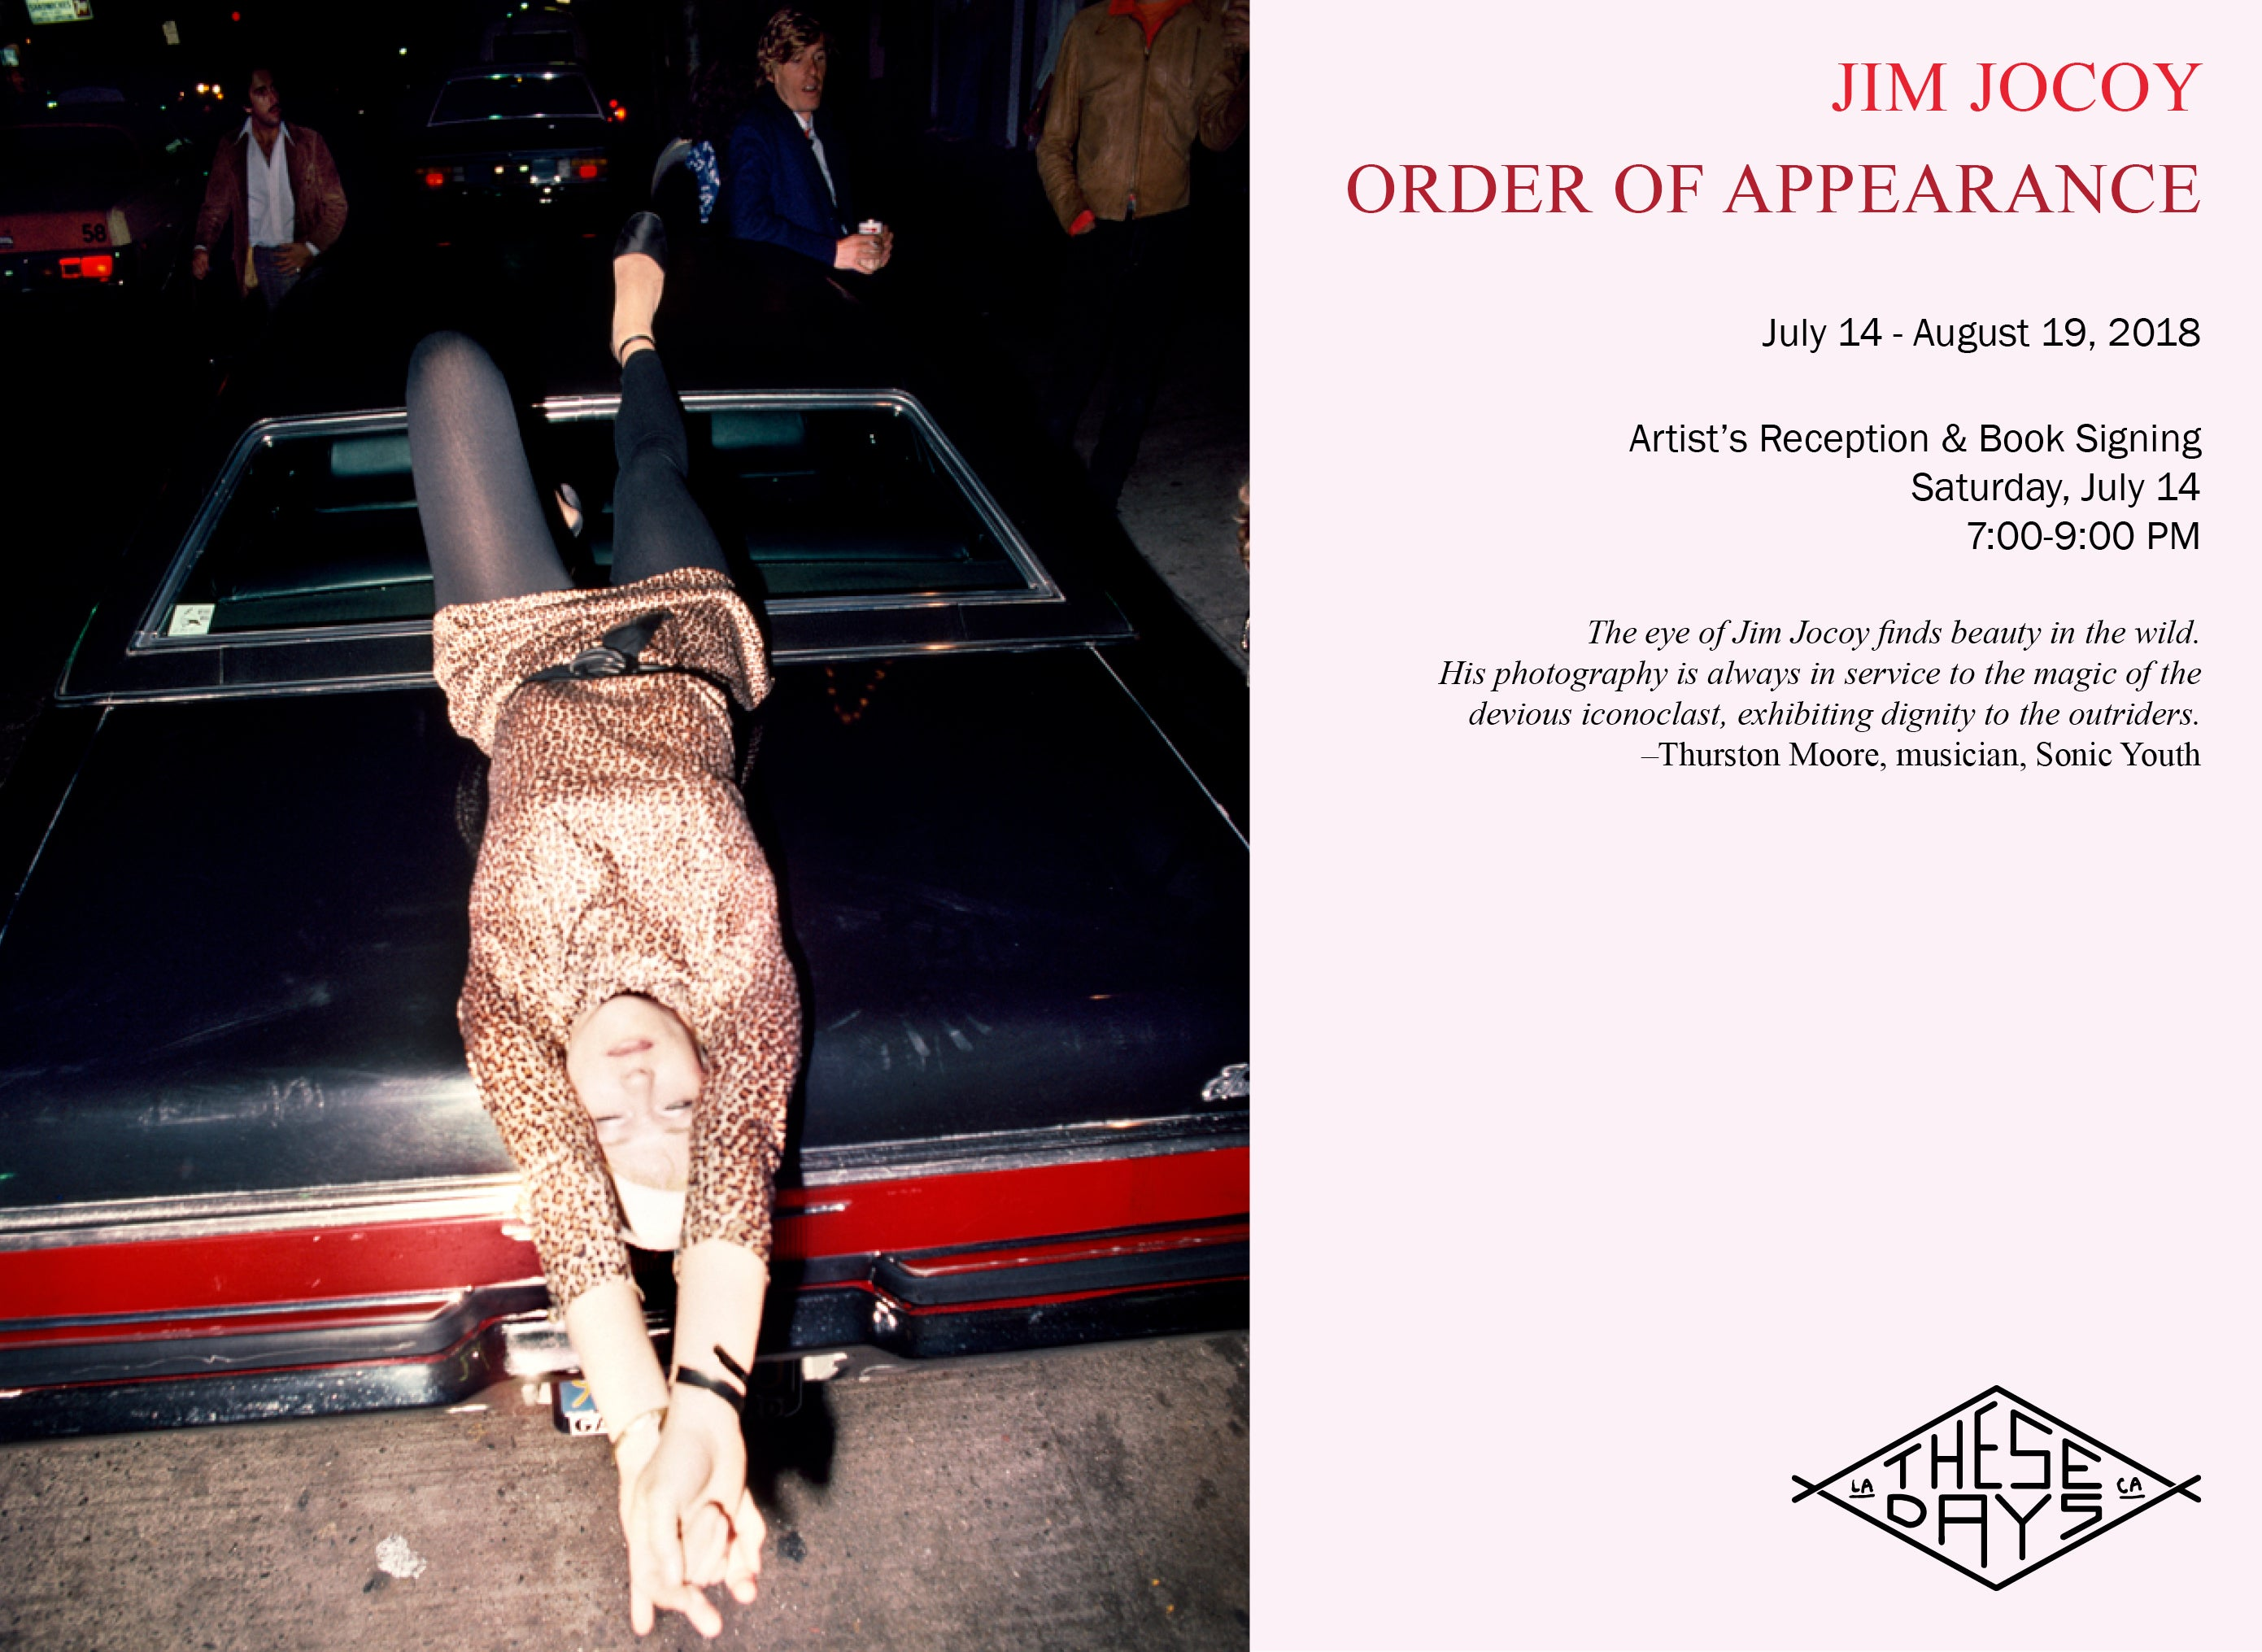 JIM JOCOY | ORDER OF APPEARANCE